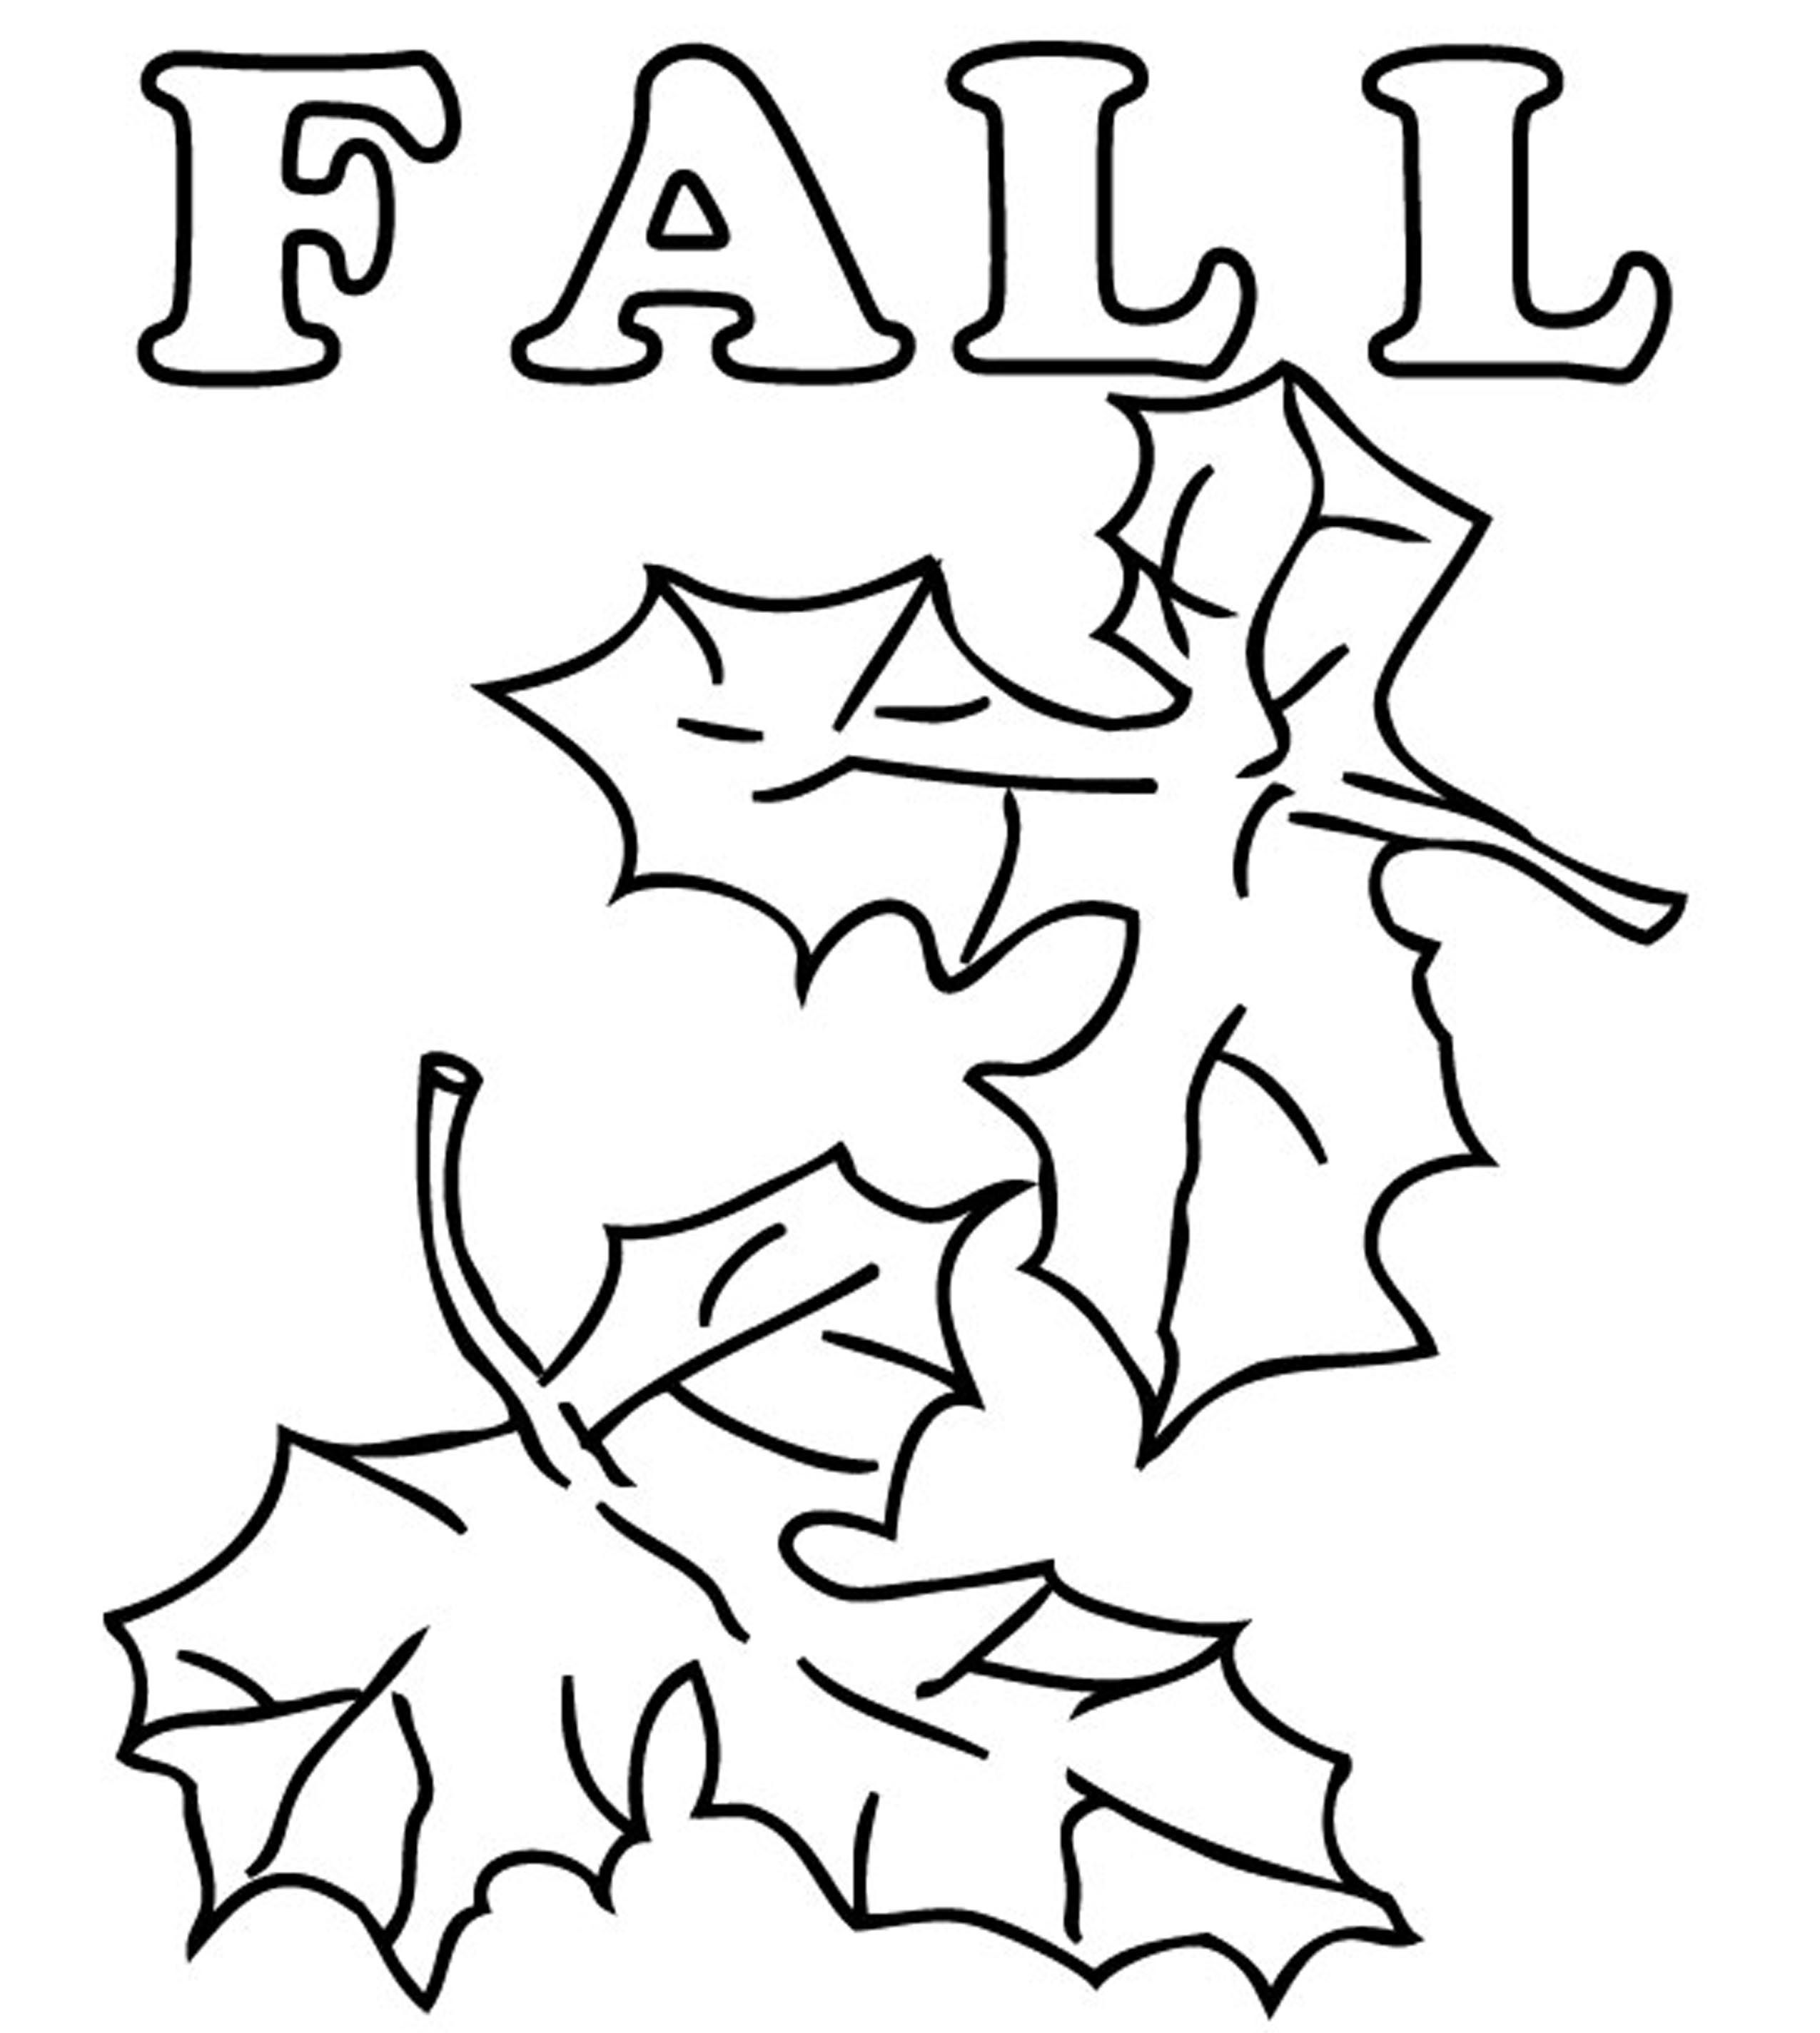 fall leaves coloring sheets fall leaves coloring pages getcoloringpagescom sheets leaves coloring fall